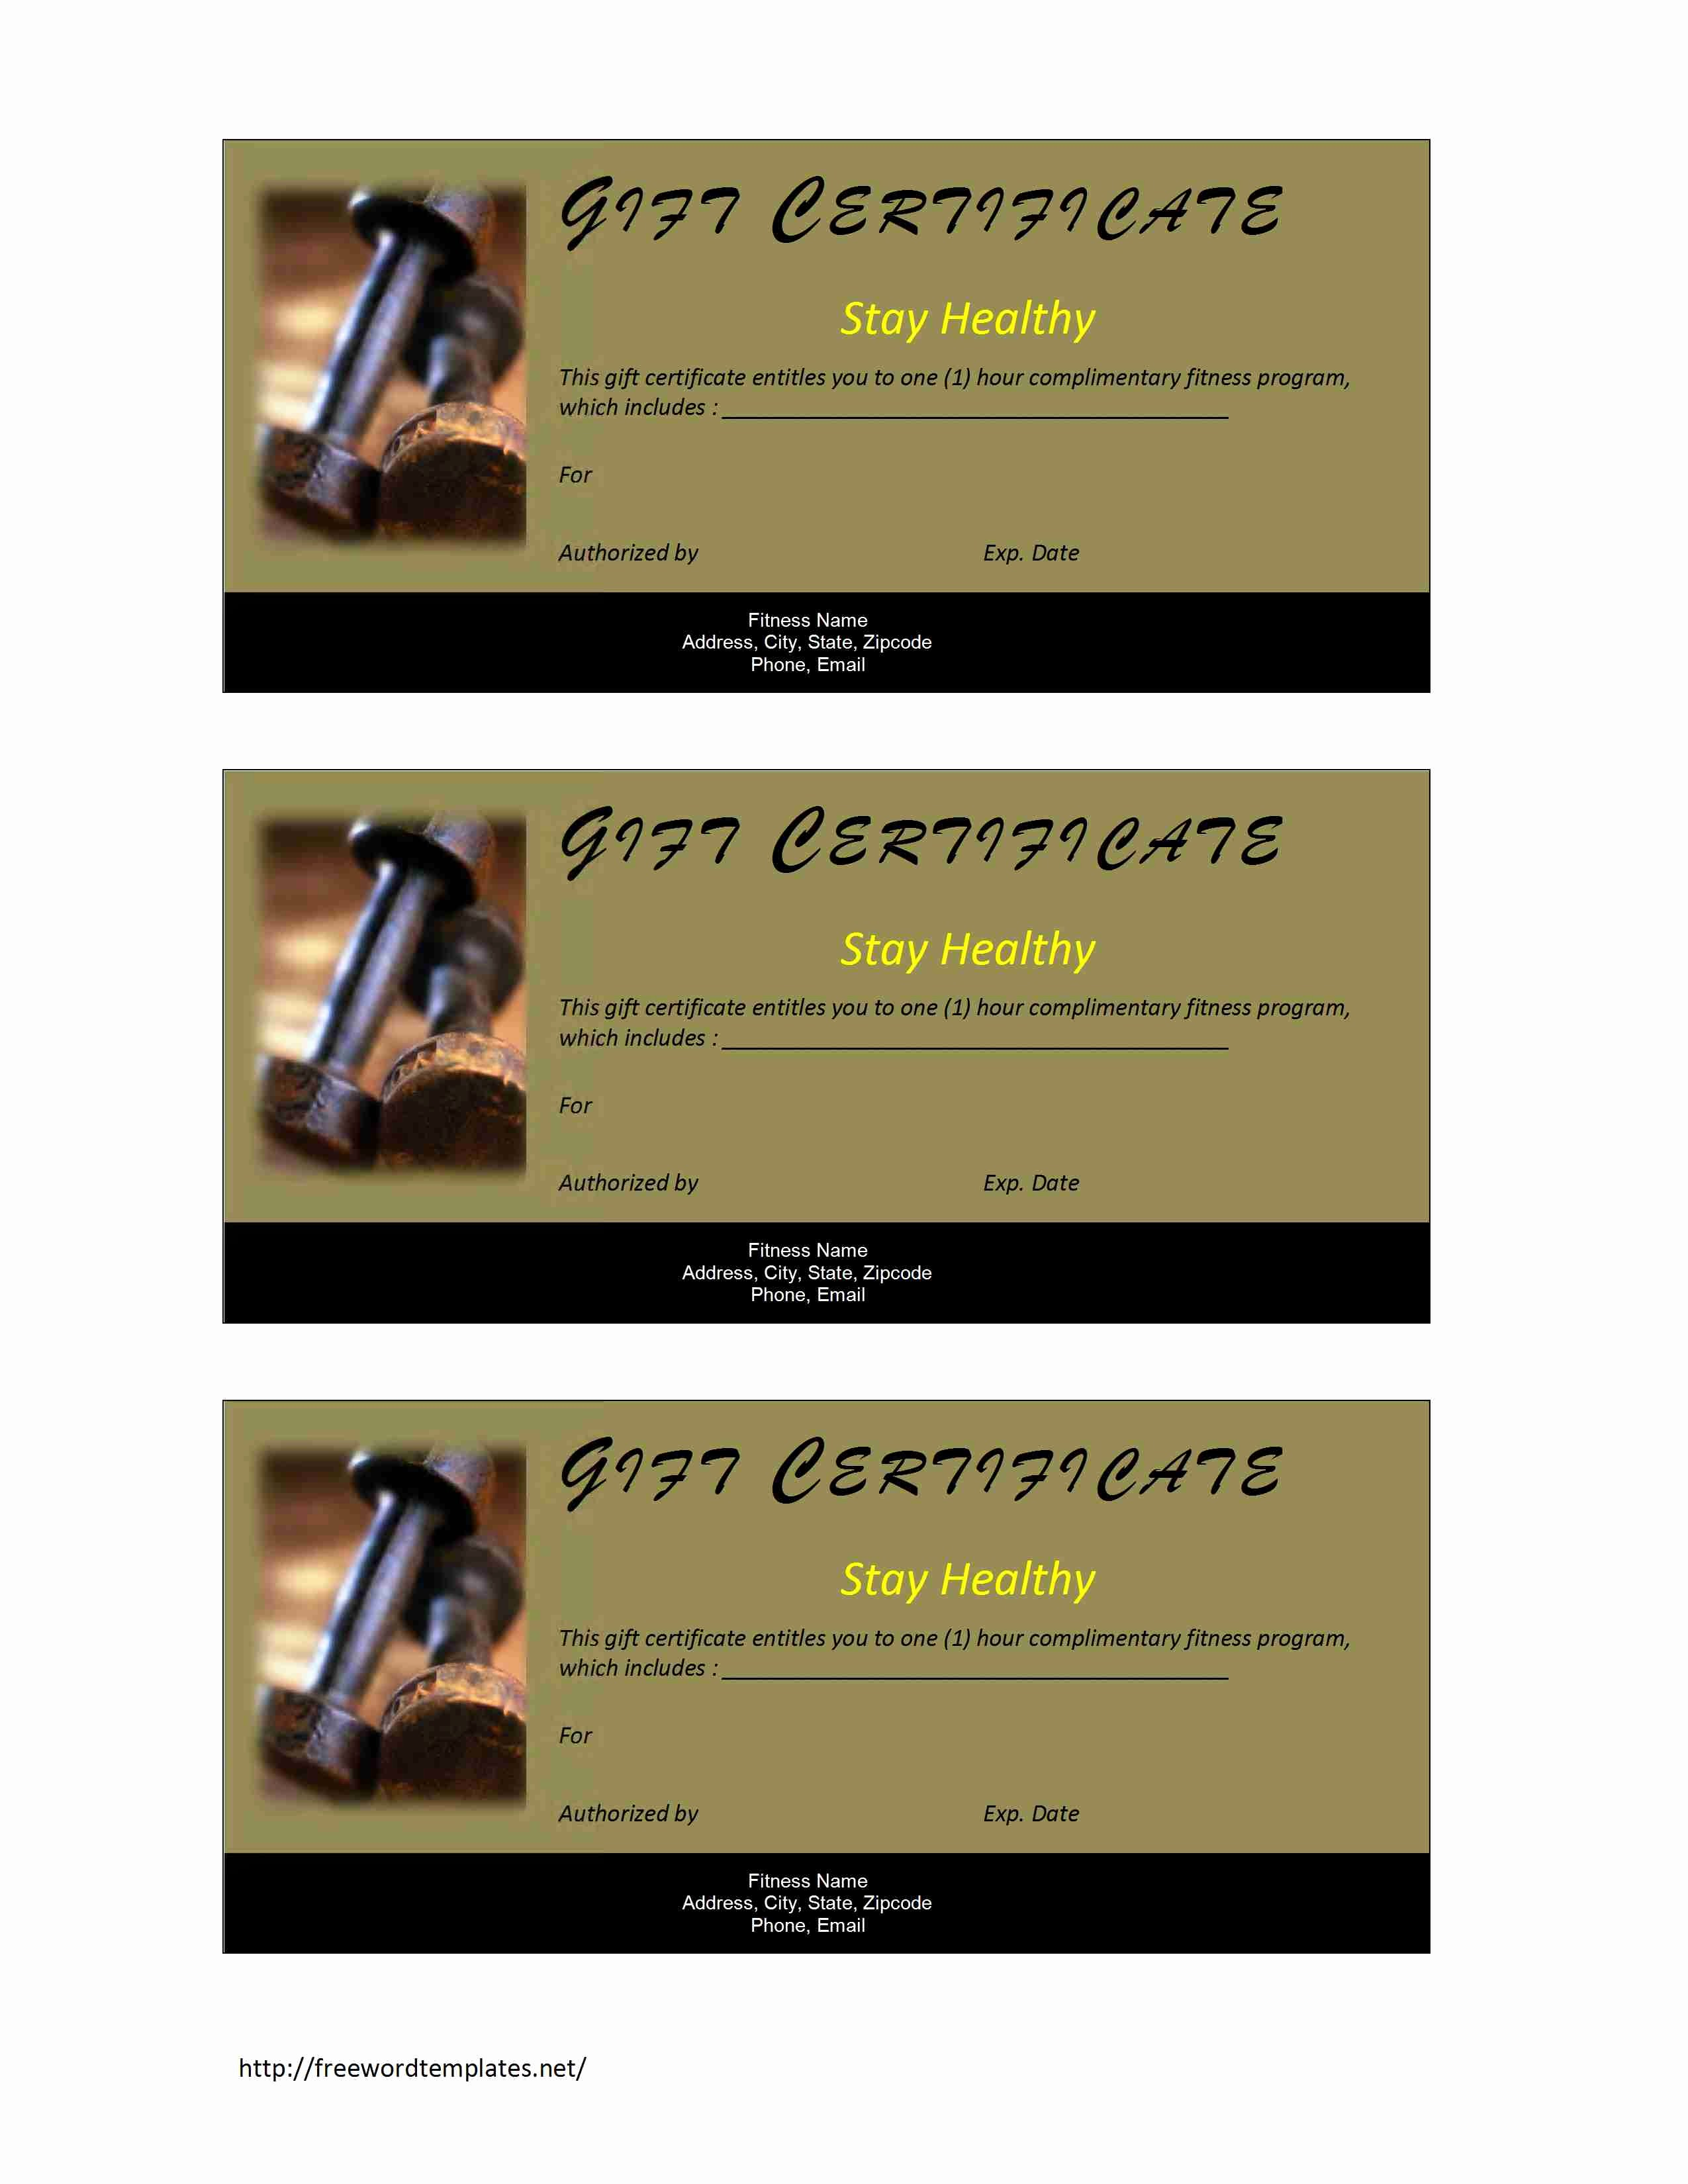 Gift Certificate Samples Free Templates New Fitness Gift Certificate